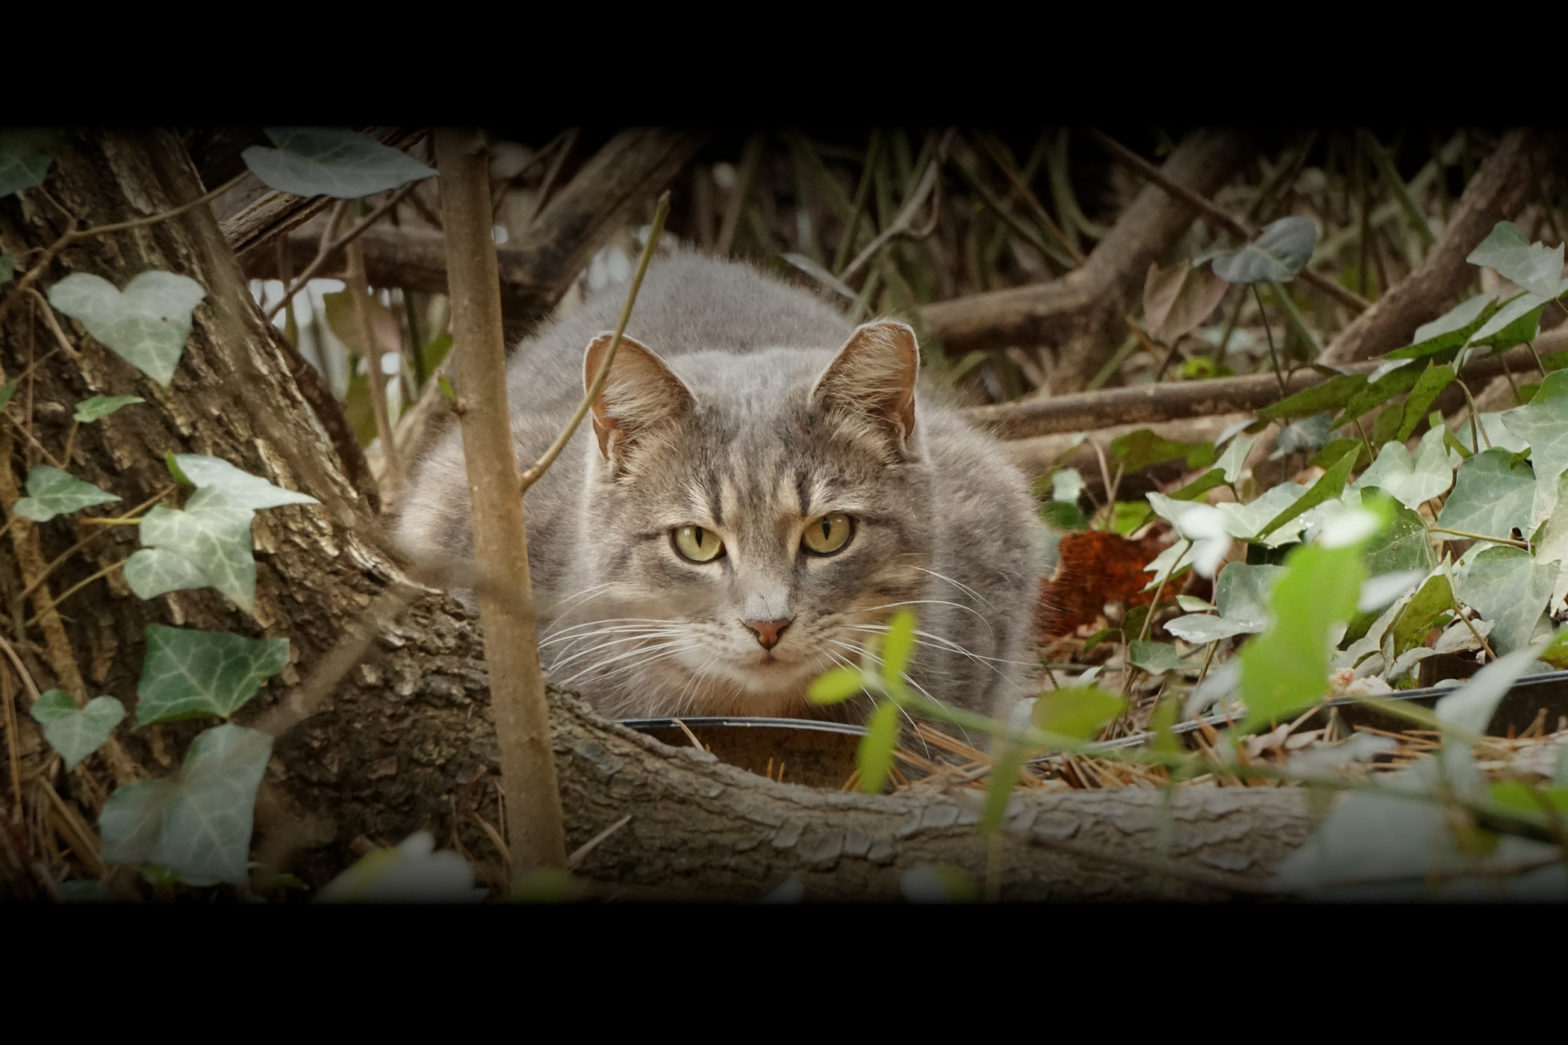 This is a brown tabby cat with the telltale ear-tip looking at the camera from under the brush